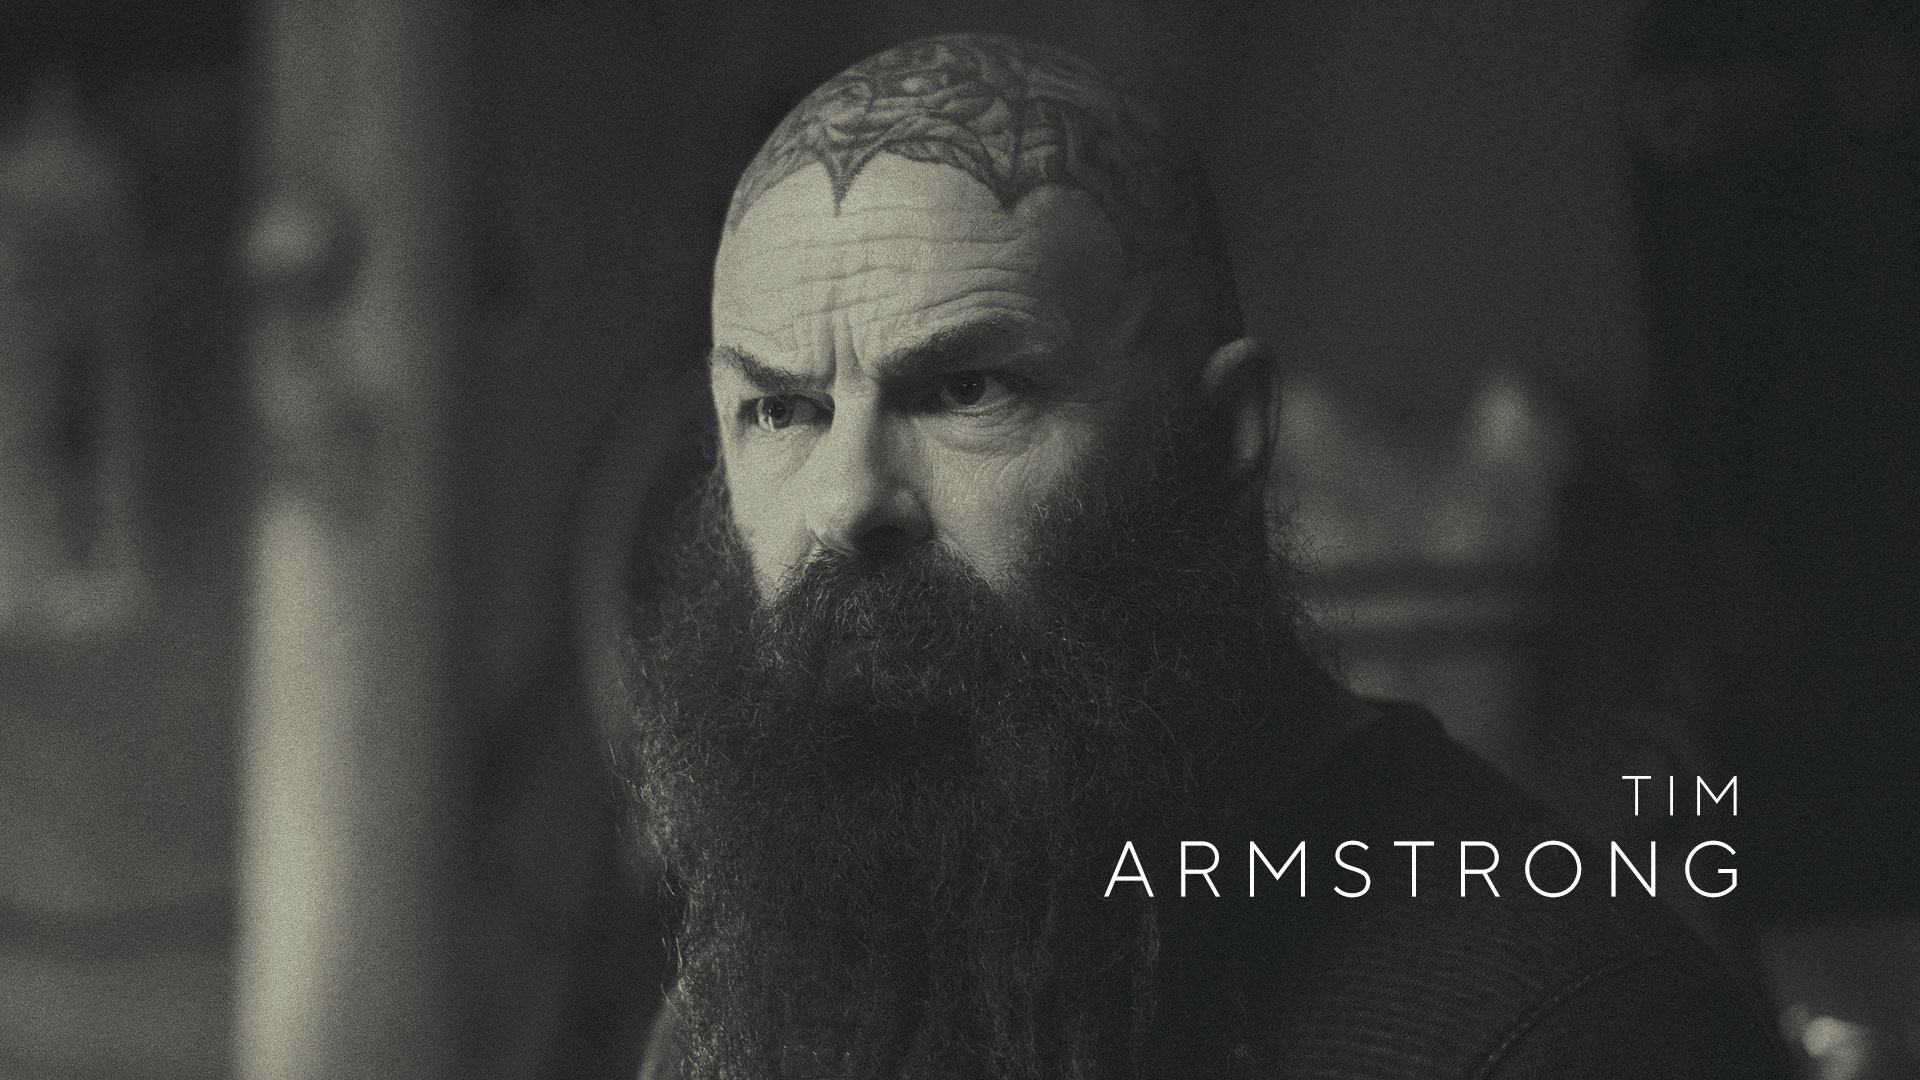 Tim Armstrong as Werewolf Larry in